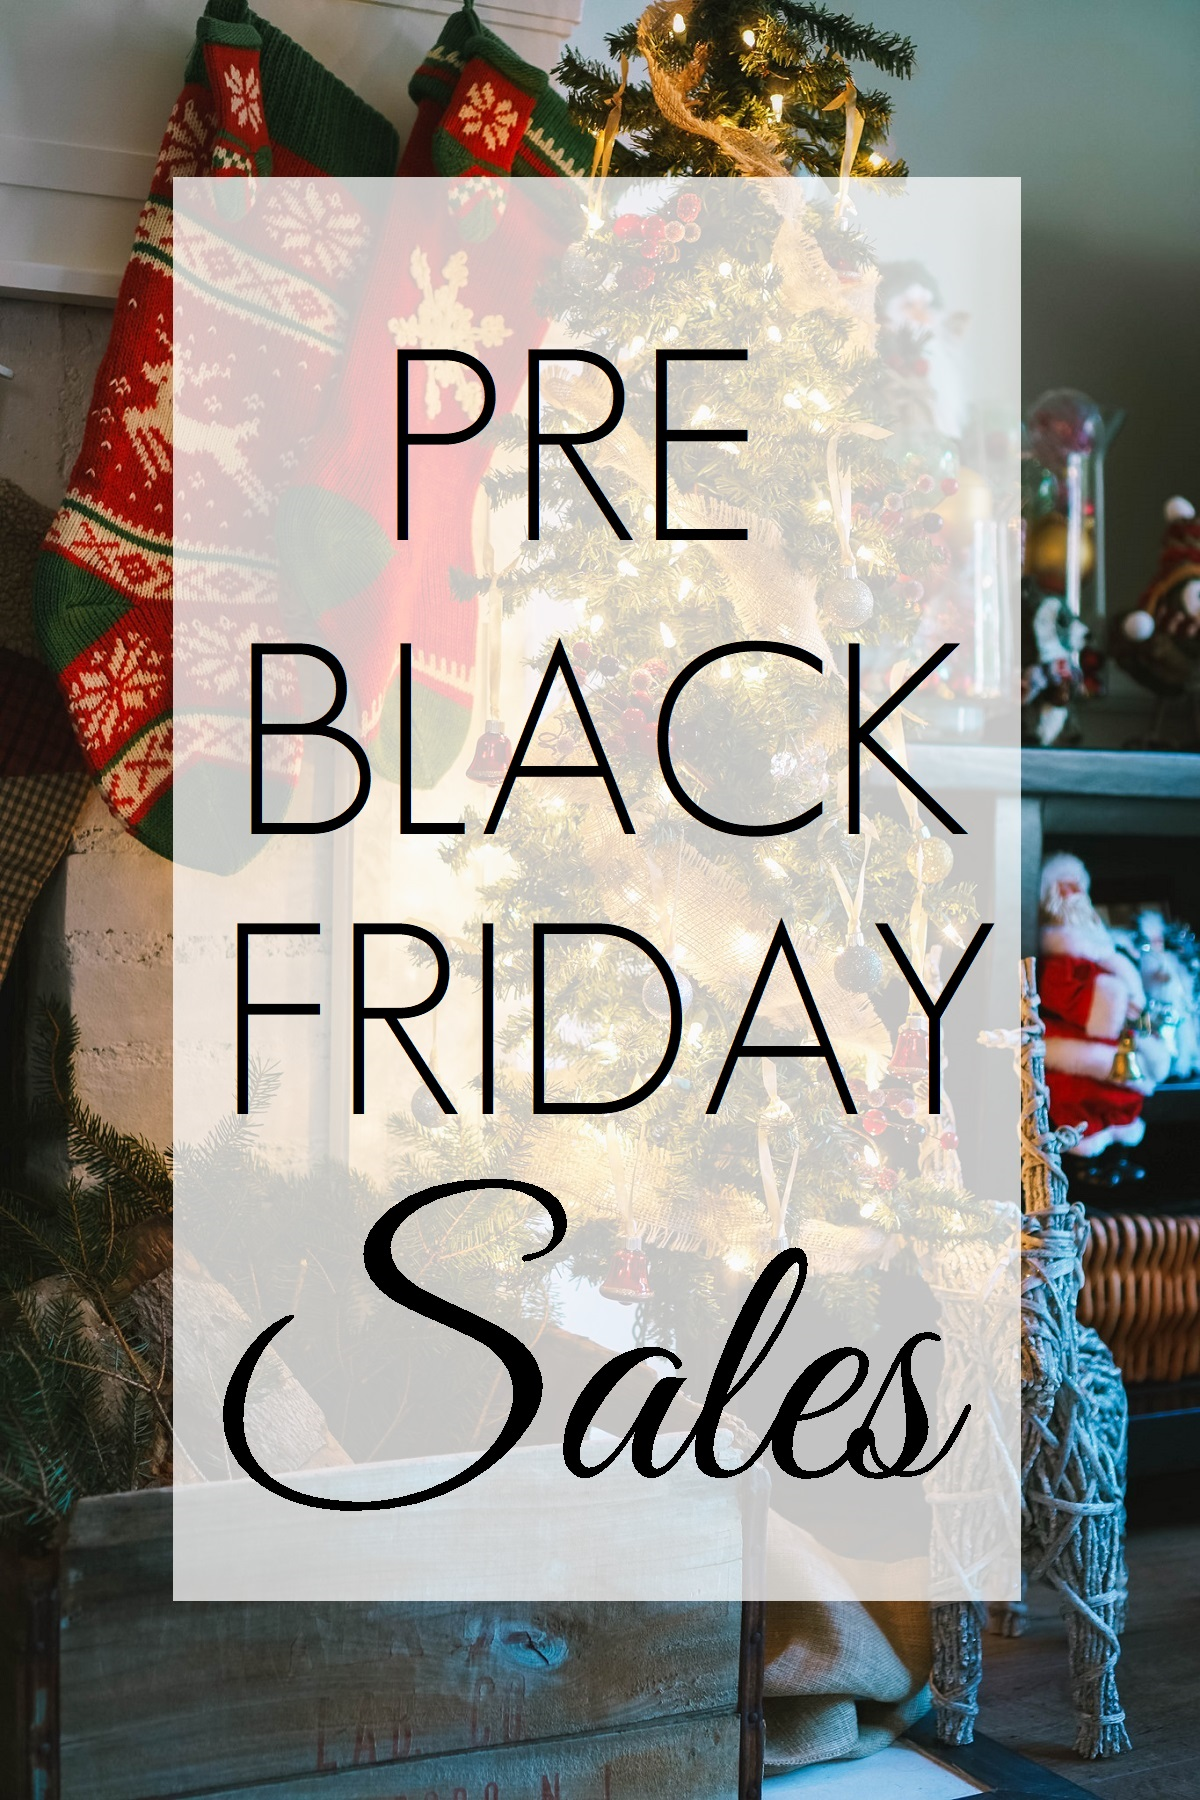 Black Friday Sale 2017 The Best Pre-black Friday Sales Of 2017 - Living After Midnite